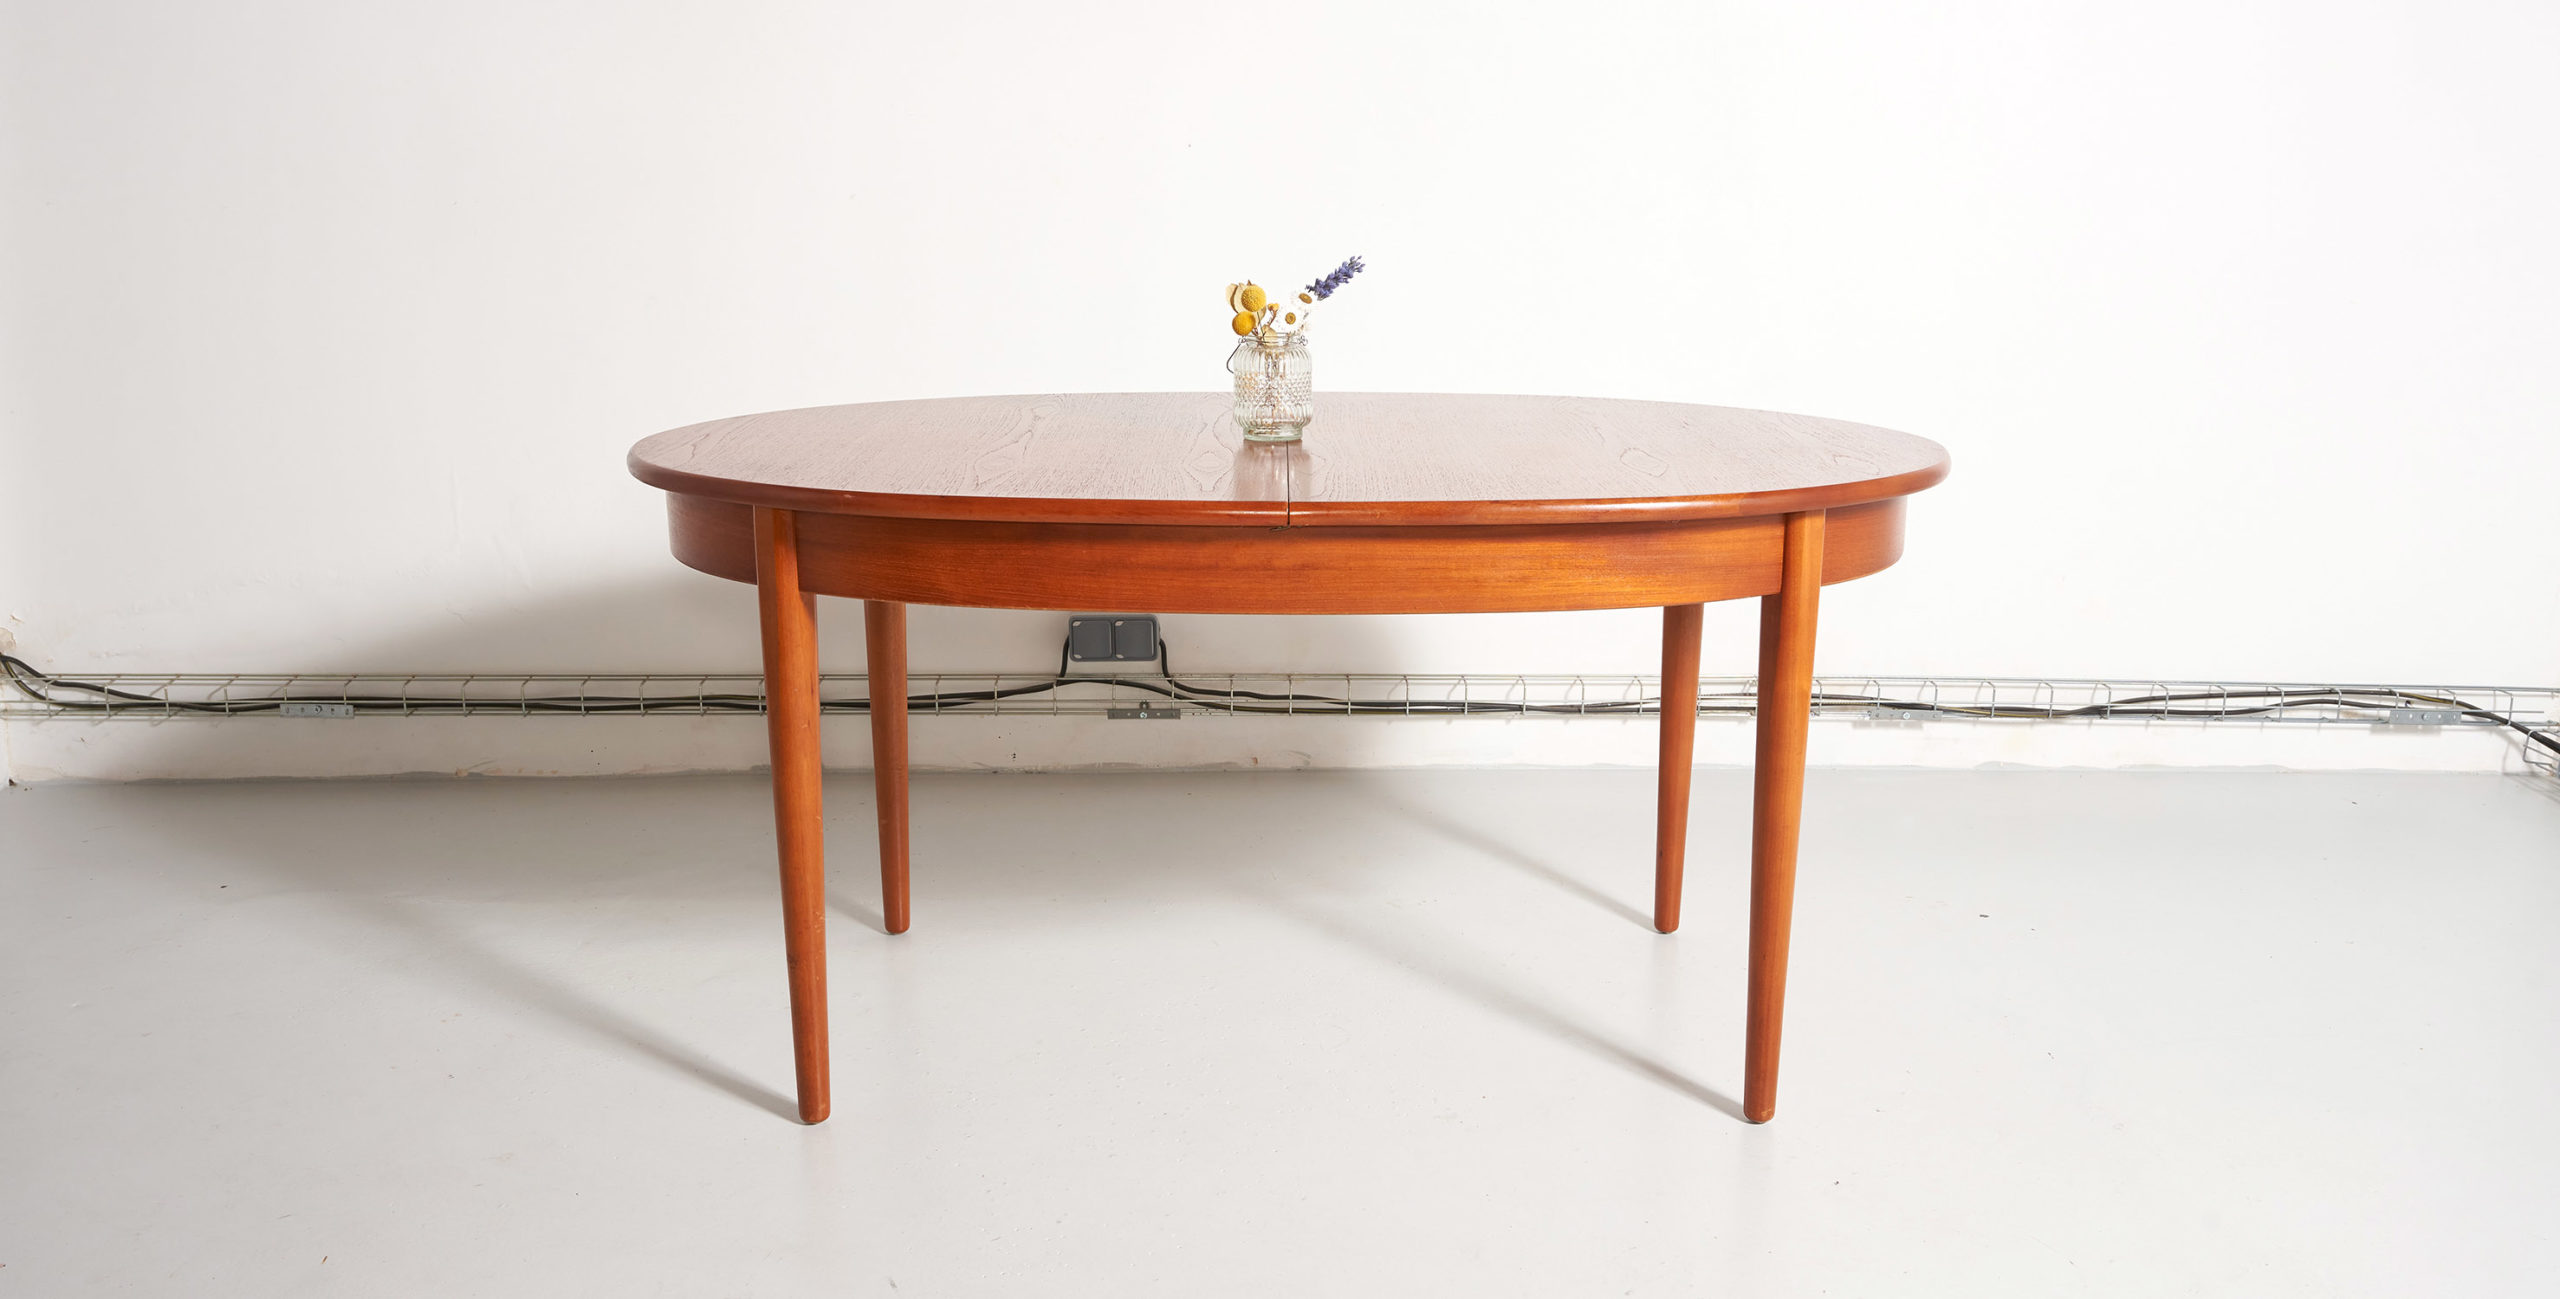 table à manger ovale, table ovale, table ovale vintage, table à manger ovale vintage, table teck vintage, table à manger teck, table à manger vintage, table gplan, table scandinave, table scandinave vintage, table danoise, table danoise vintage, table rallonge papillon, table à manger avec rallonge papillon, rallonge papillon